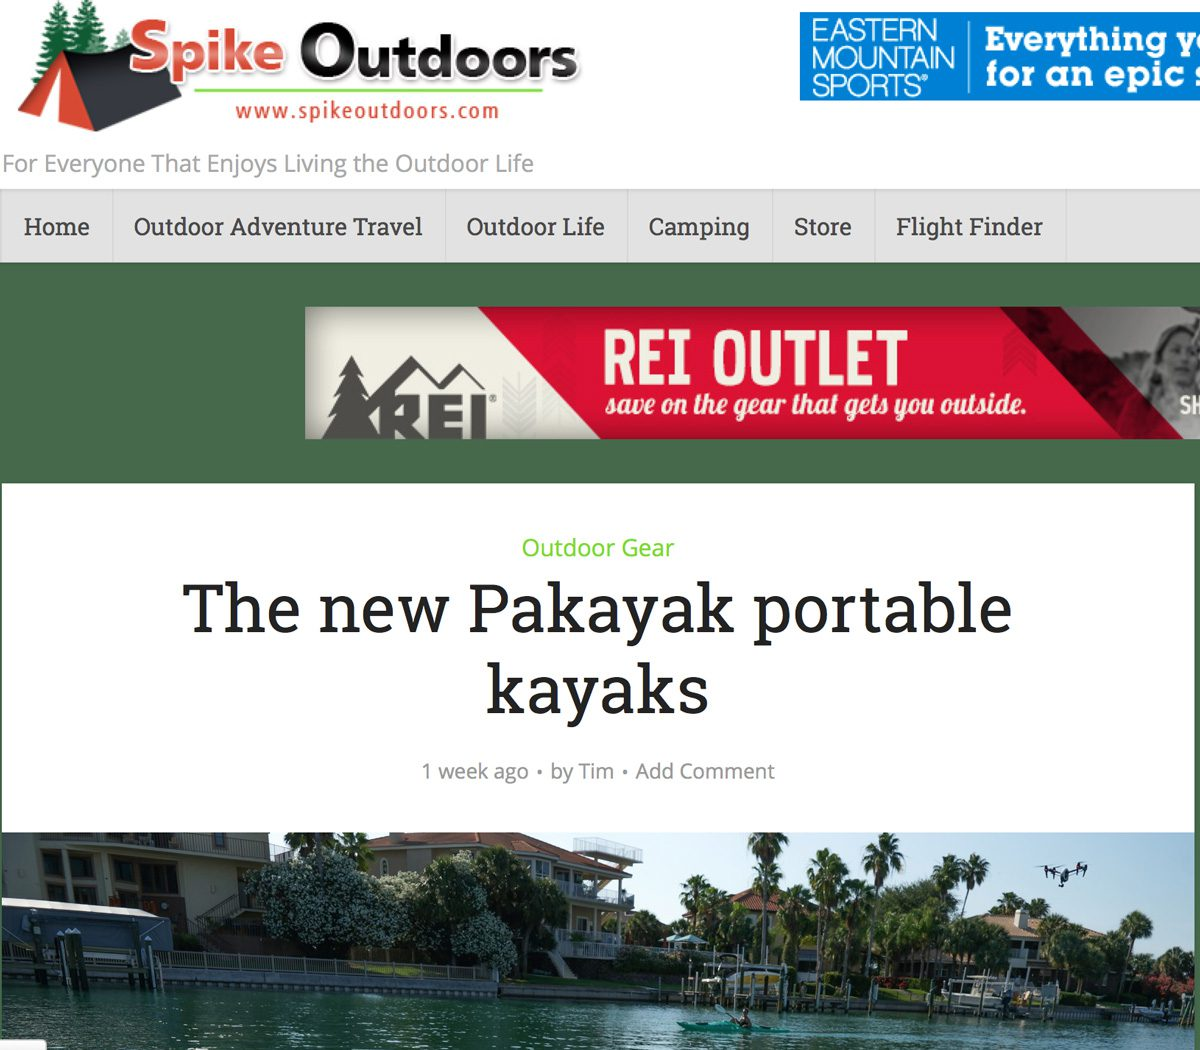 Spike Outdoors: The new Pakayak portable kayaks